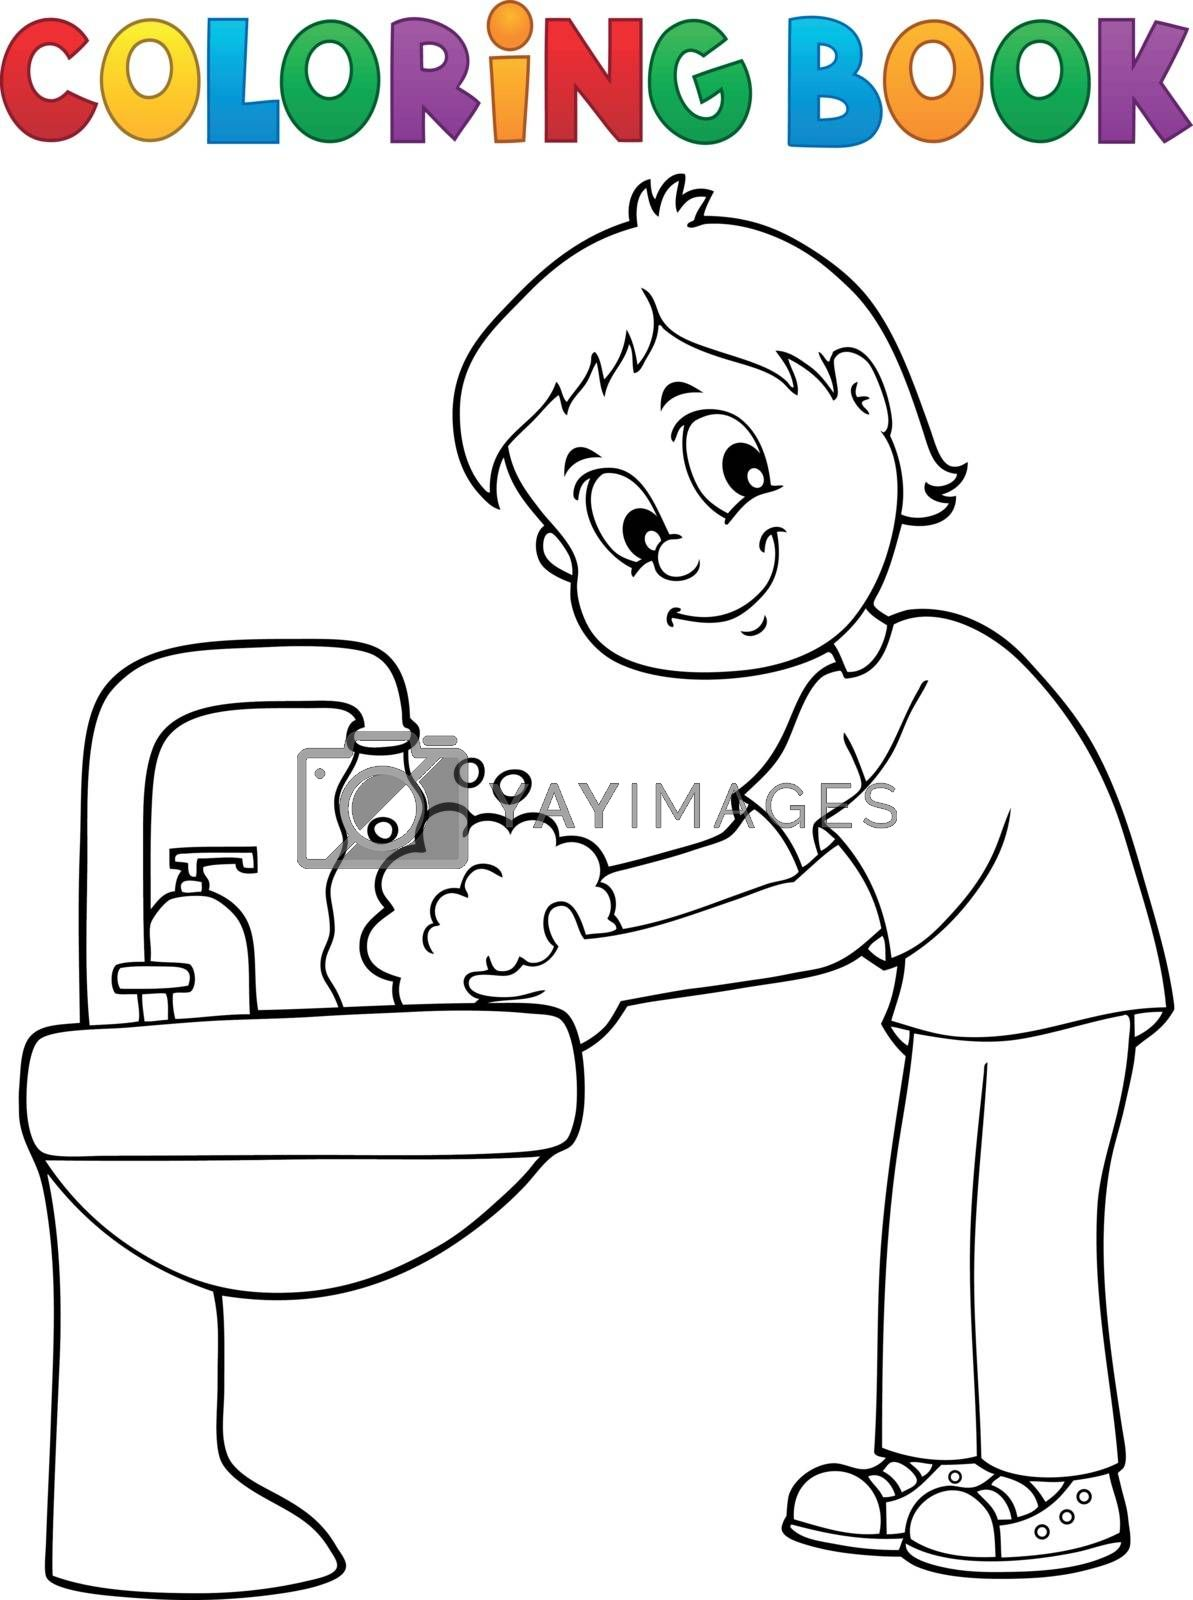 Coloring book boy washing hands theme 1 - eps10 vector illustration.